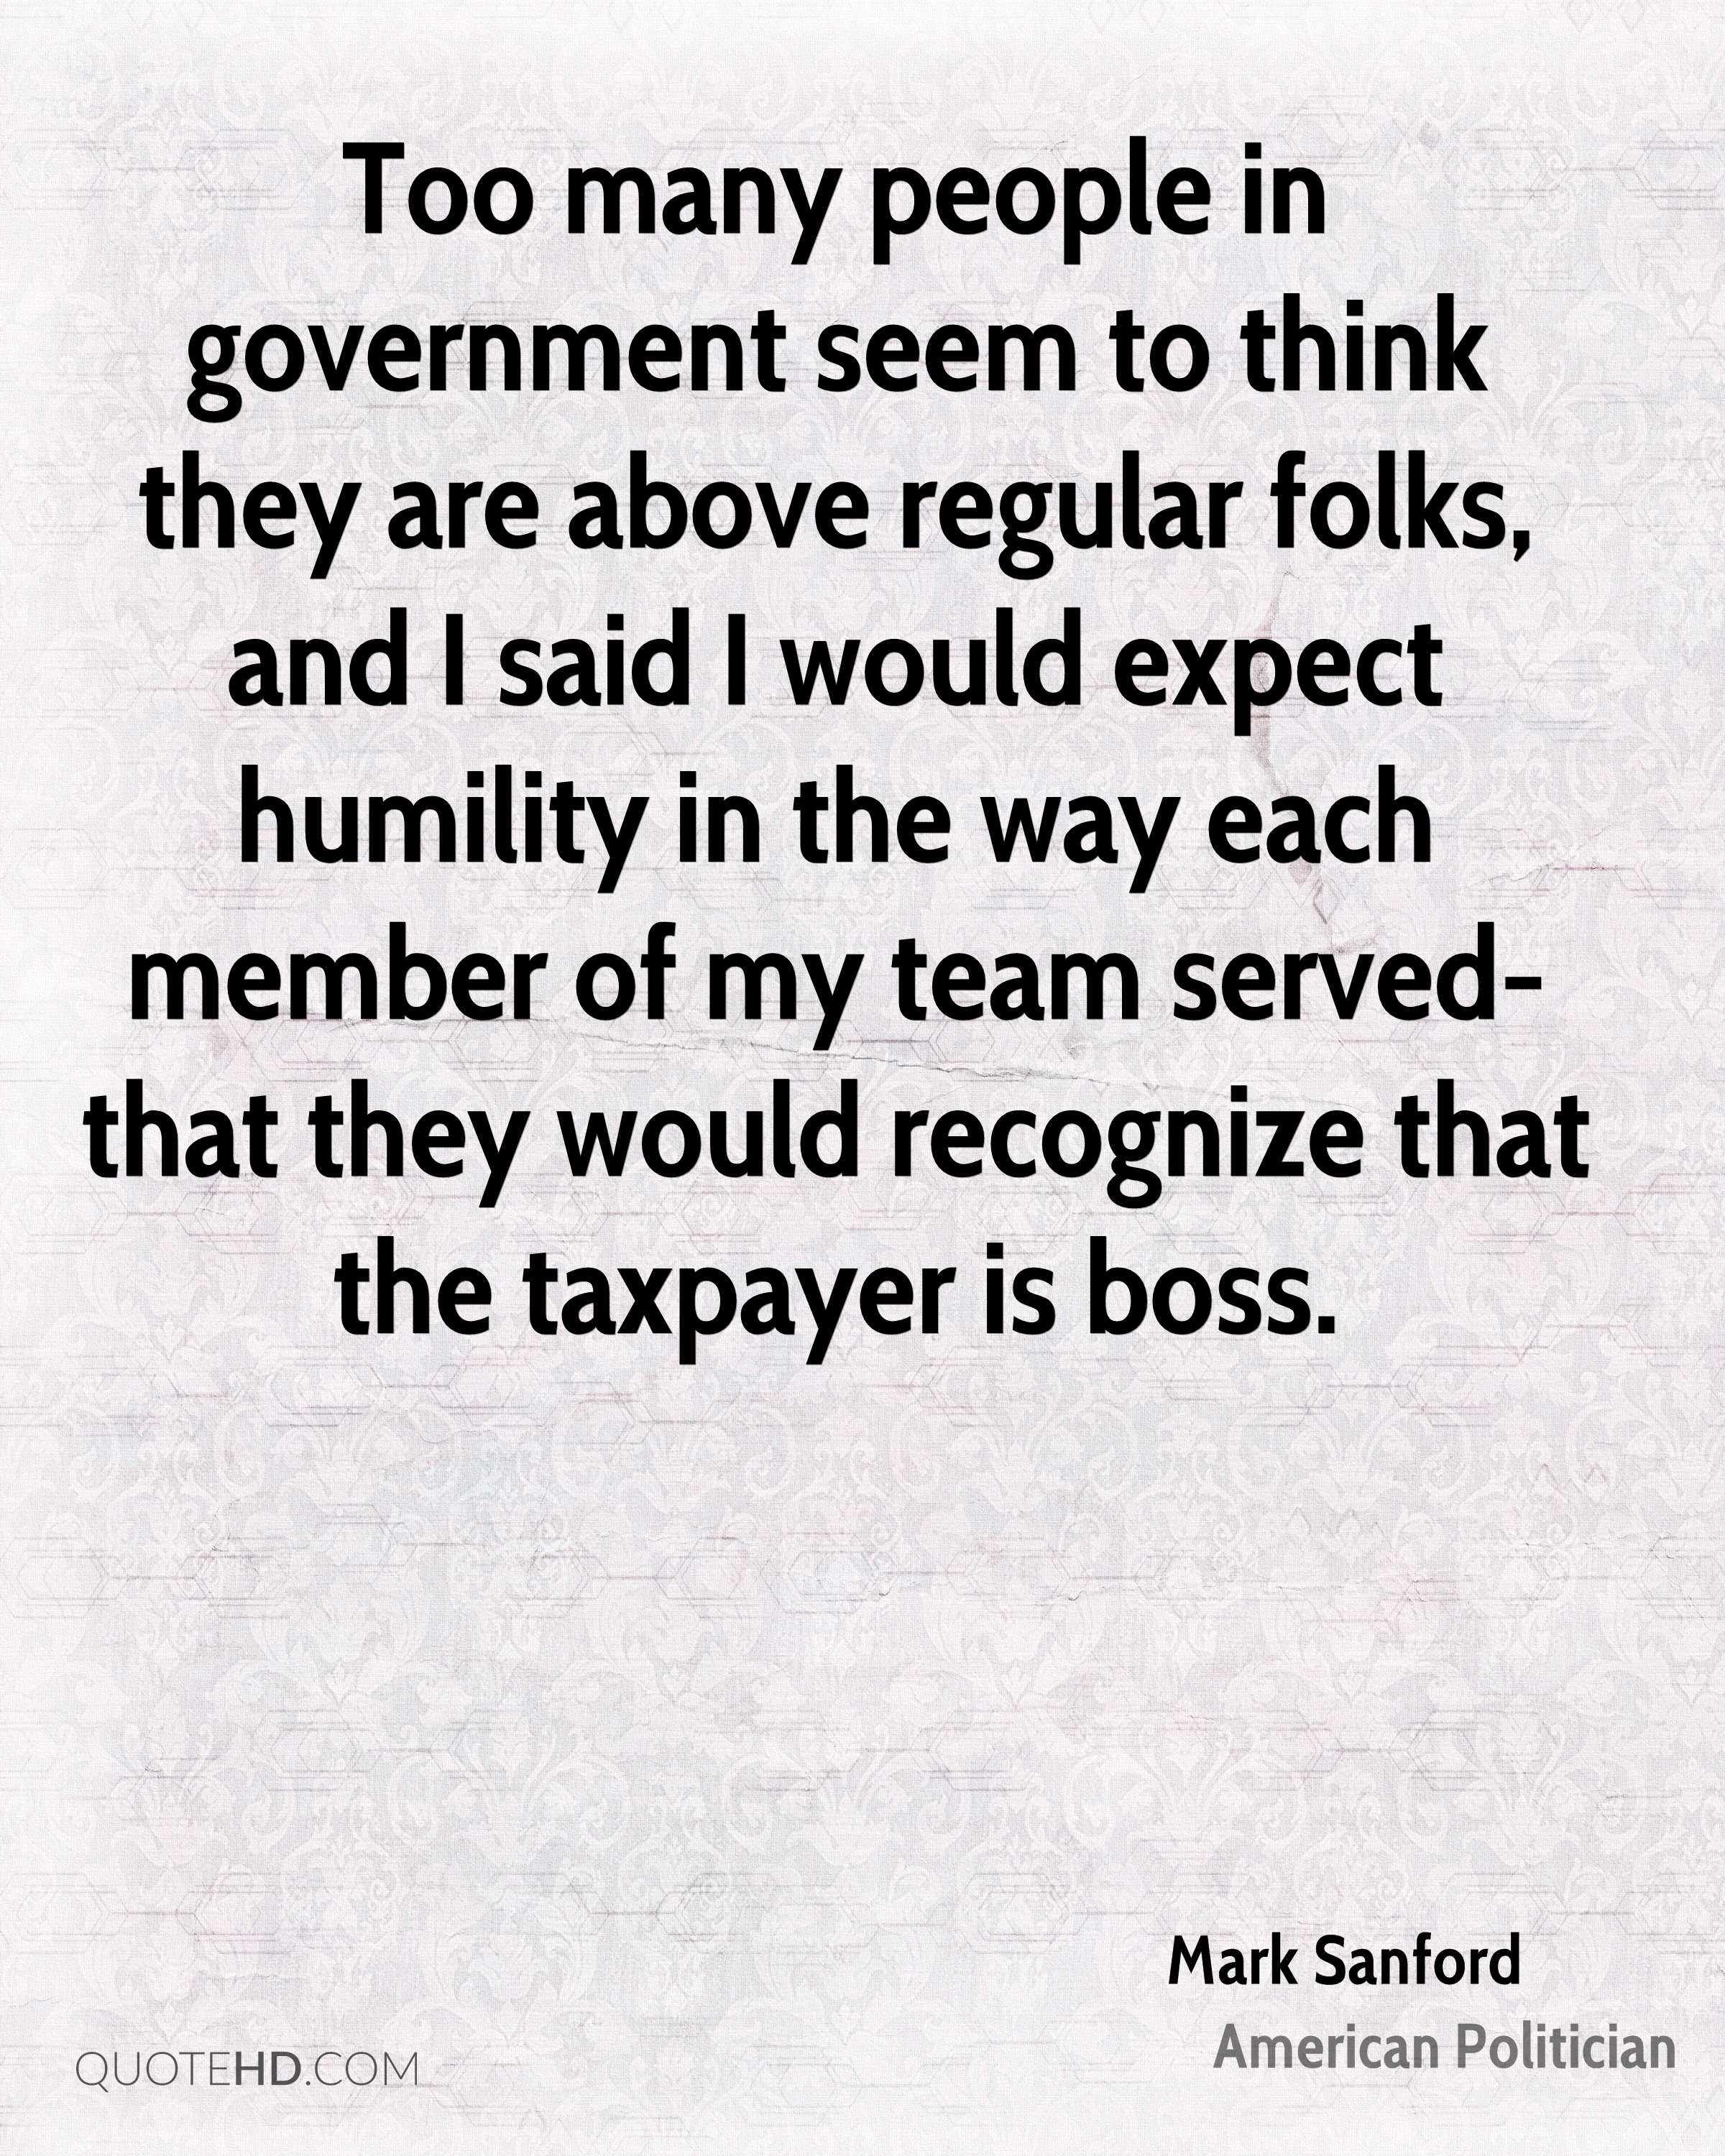 Too many people in government seem to think they are above regular folks, and I said I would expect humility in the way each member of my team served- that they would recognize that the taxpayer is boss.